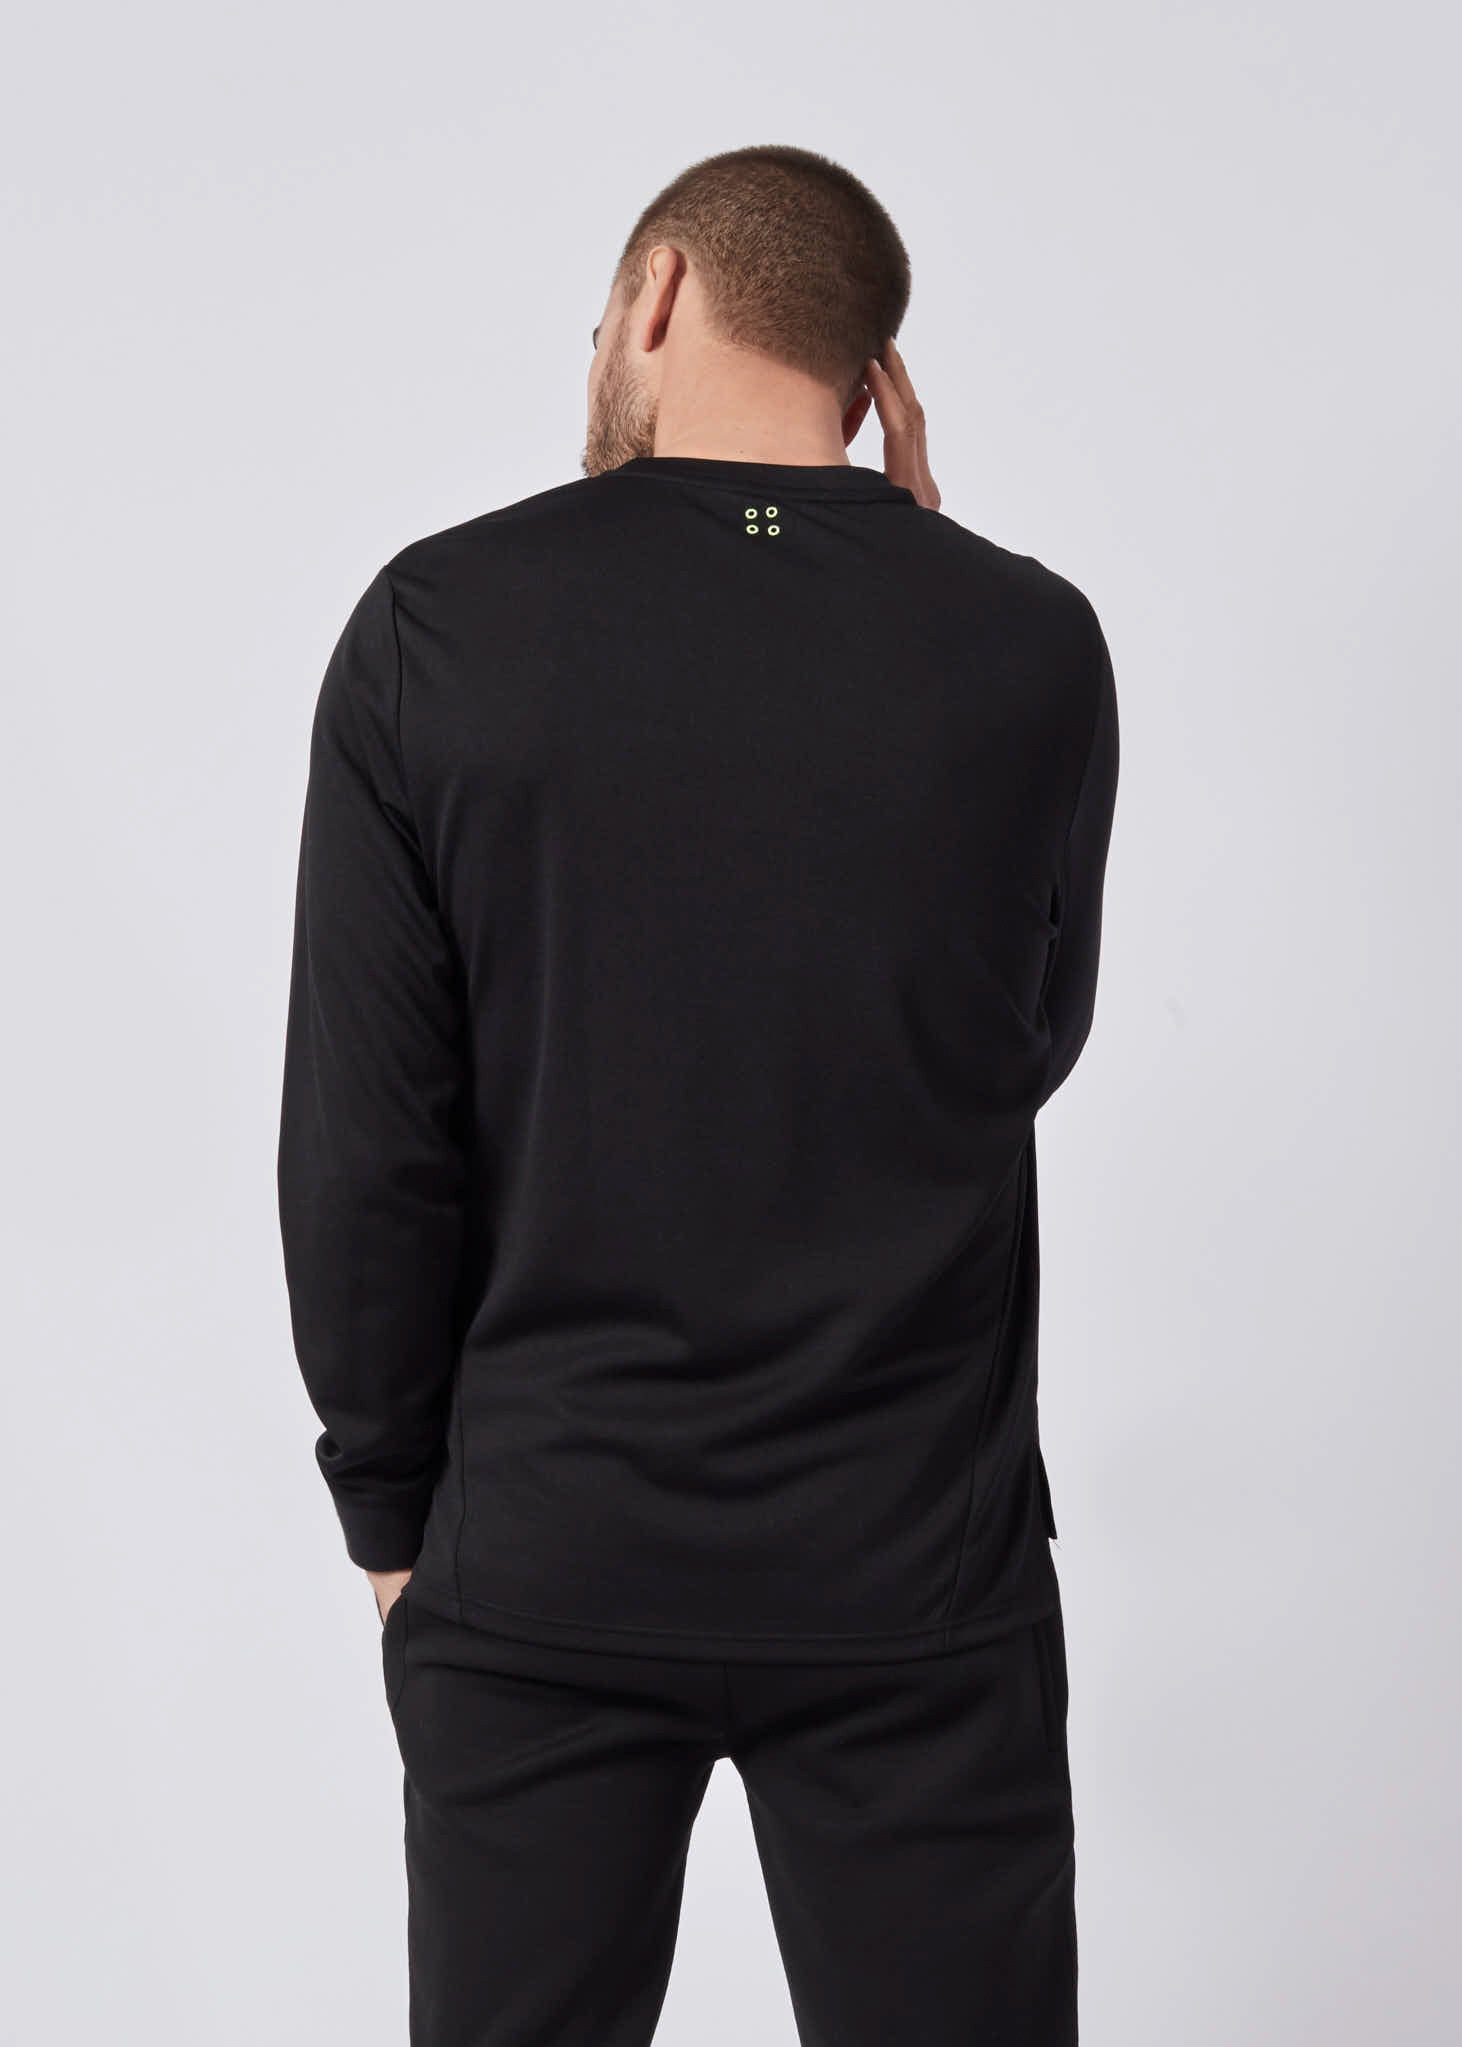 Auston Long Sleeve